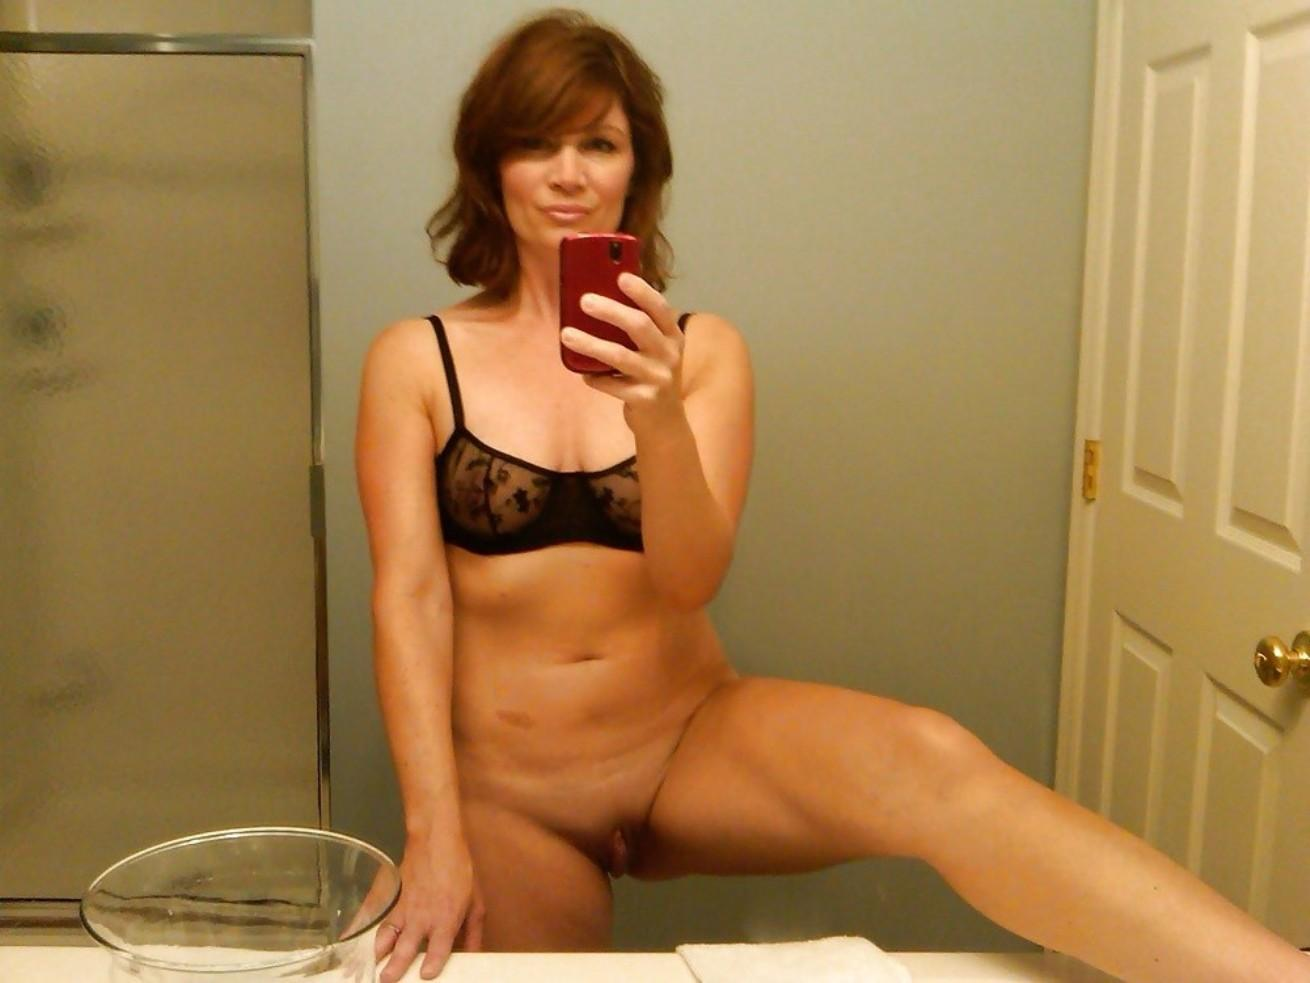 Awesome Milf without panties exposes a nice pussy in bathroom self shot. Mature babe takes pussy selfie in the bathroom mirror